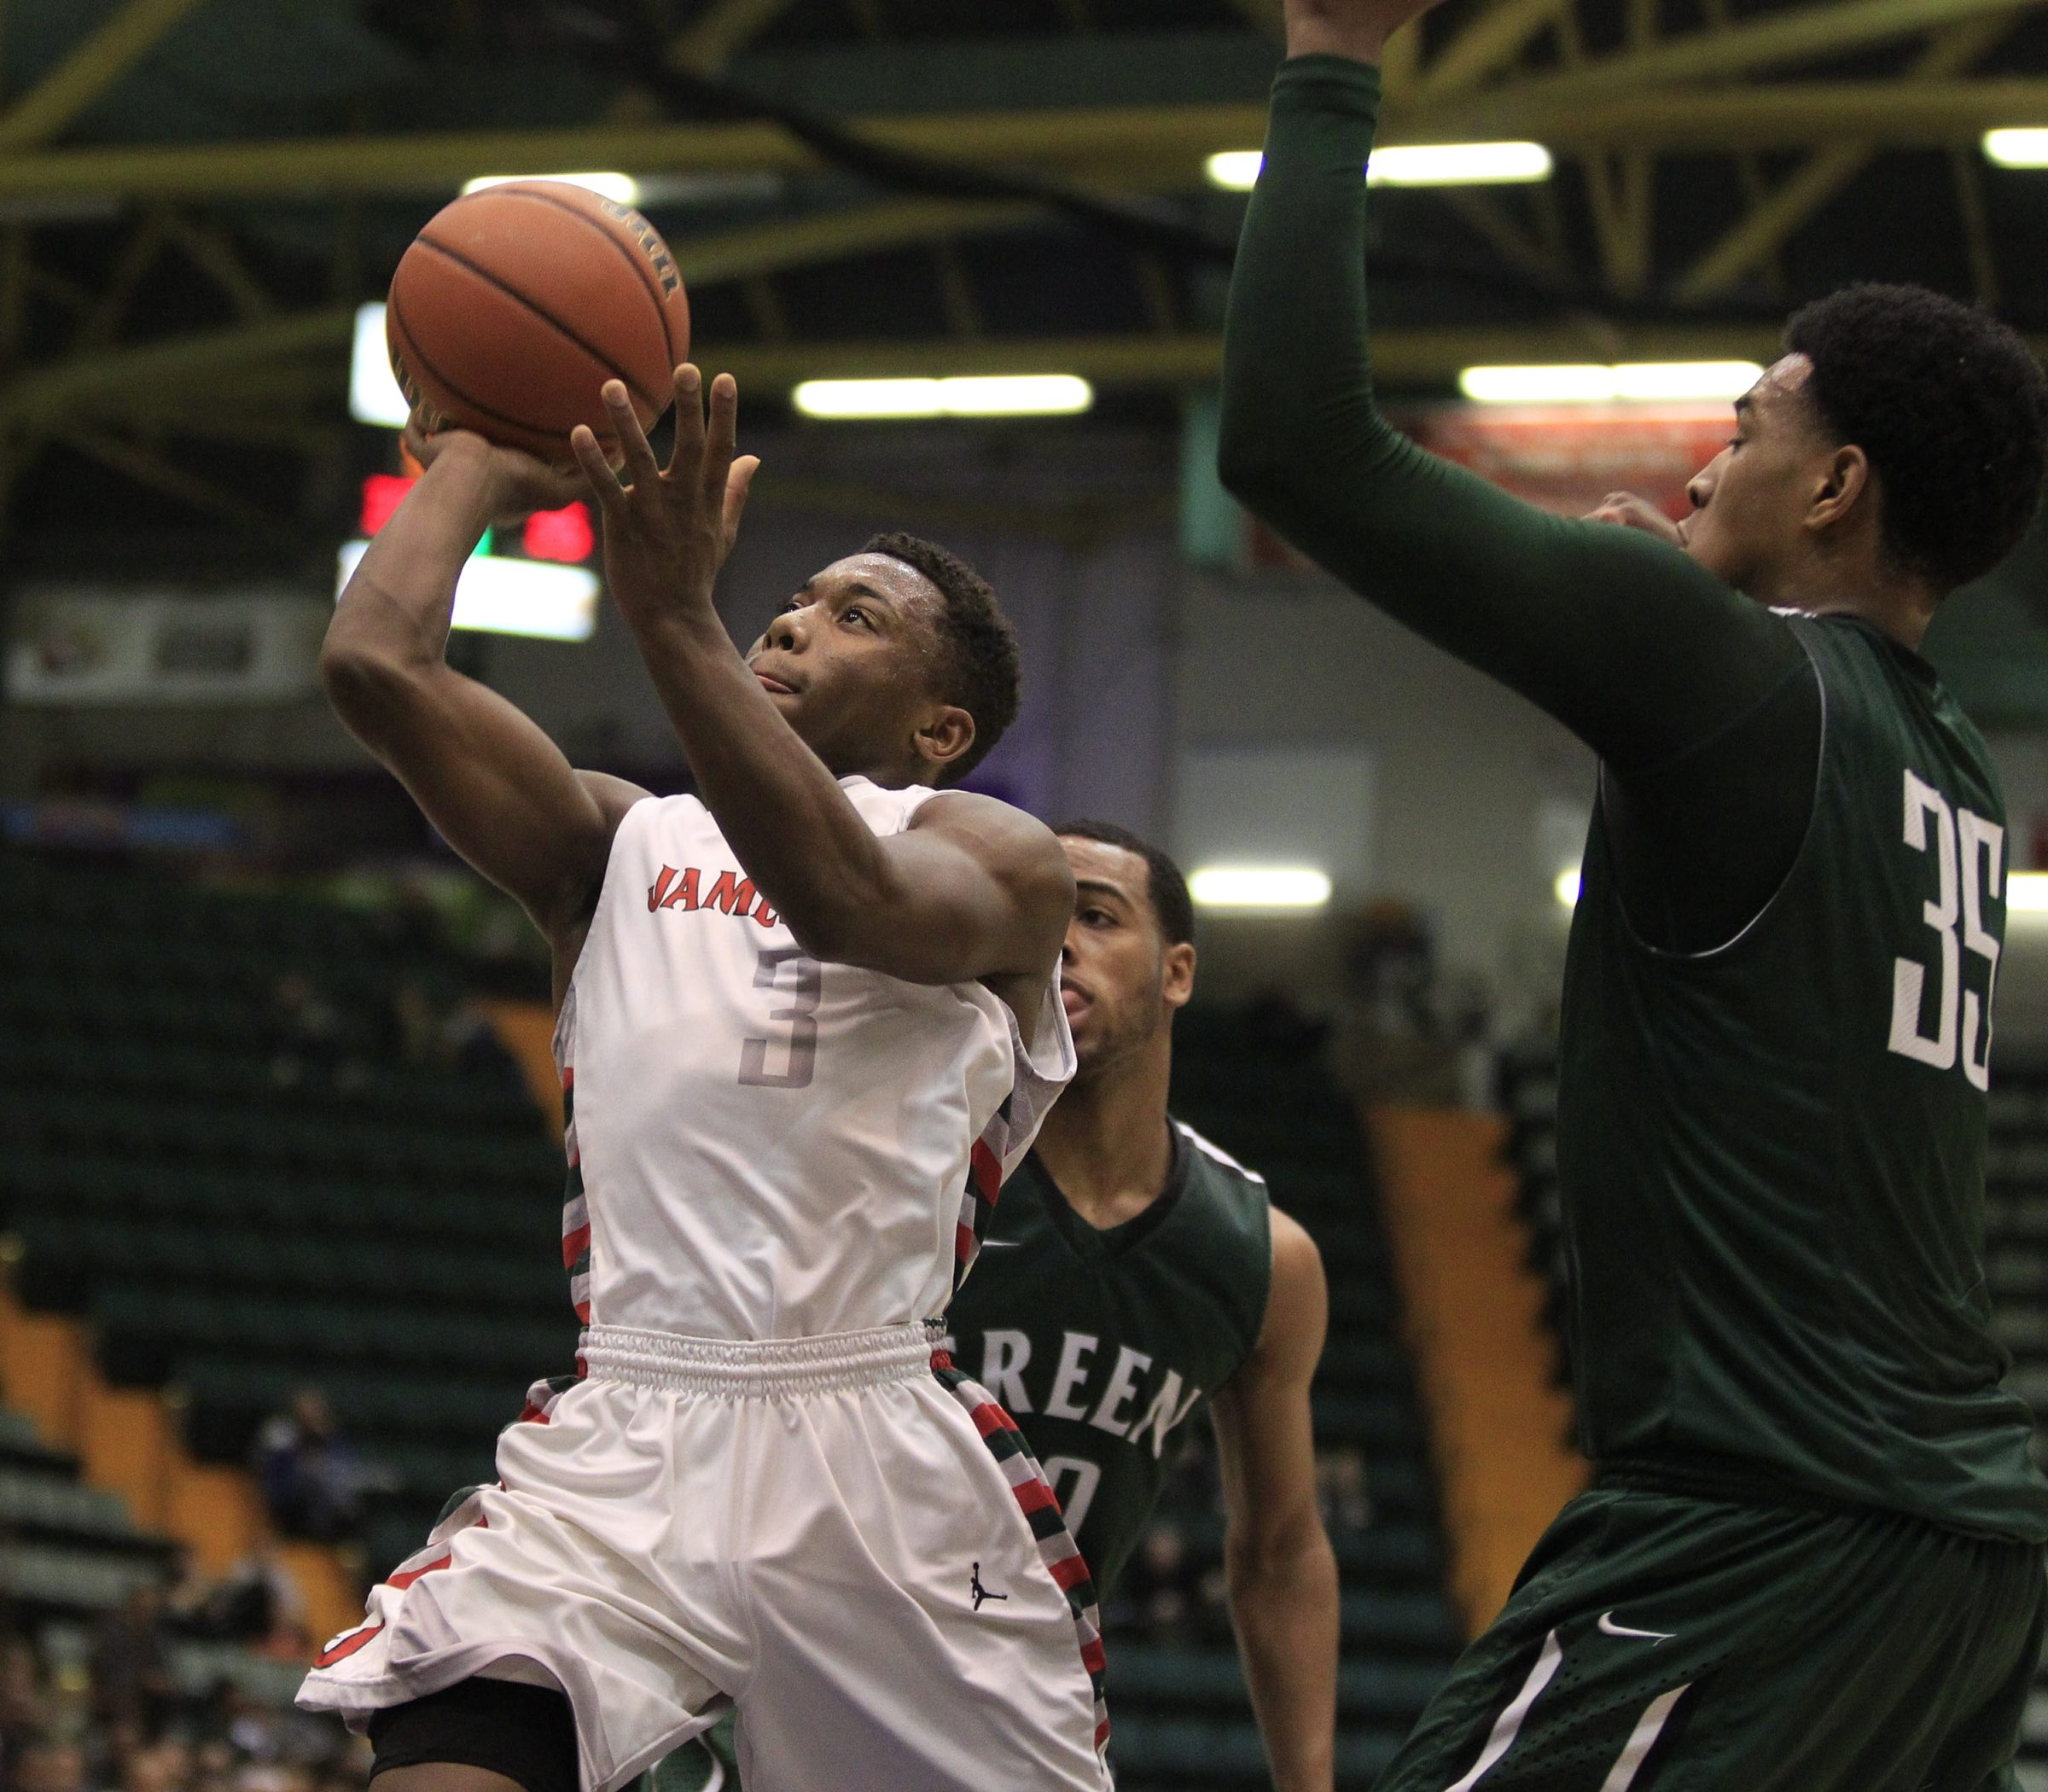 Zacc Kinsey (3) and Jamestown made it to the NYSPHSAA Class AA final, losing to Green Tech.